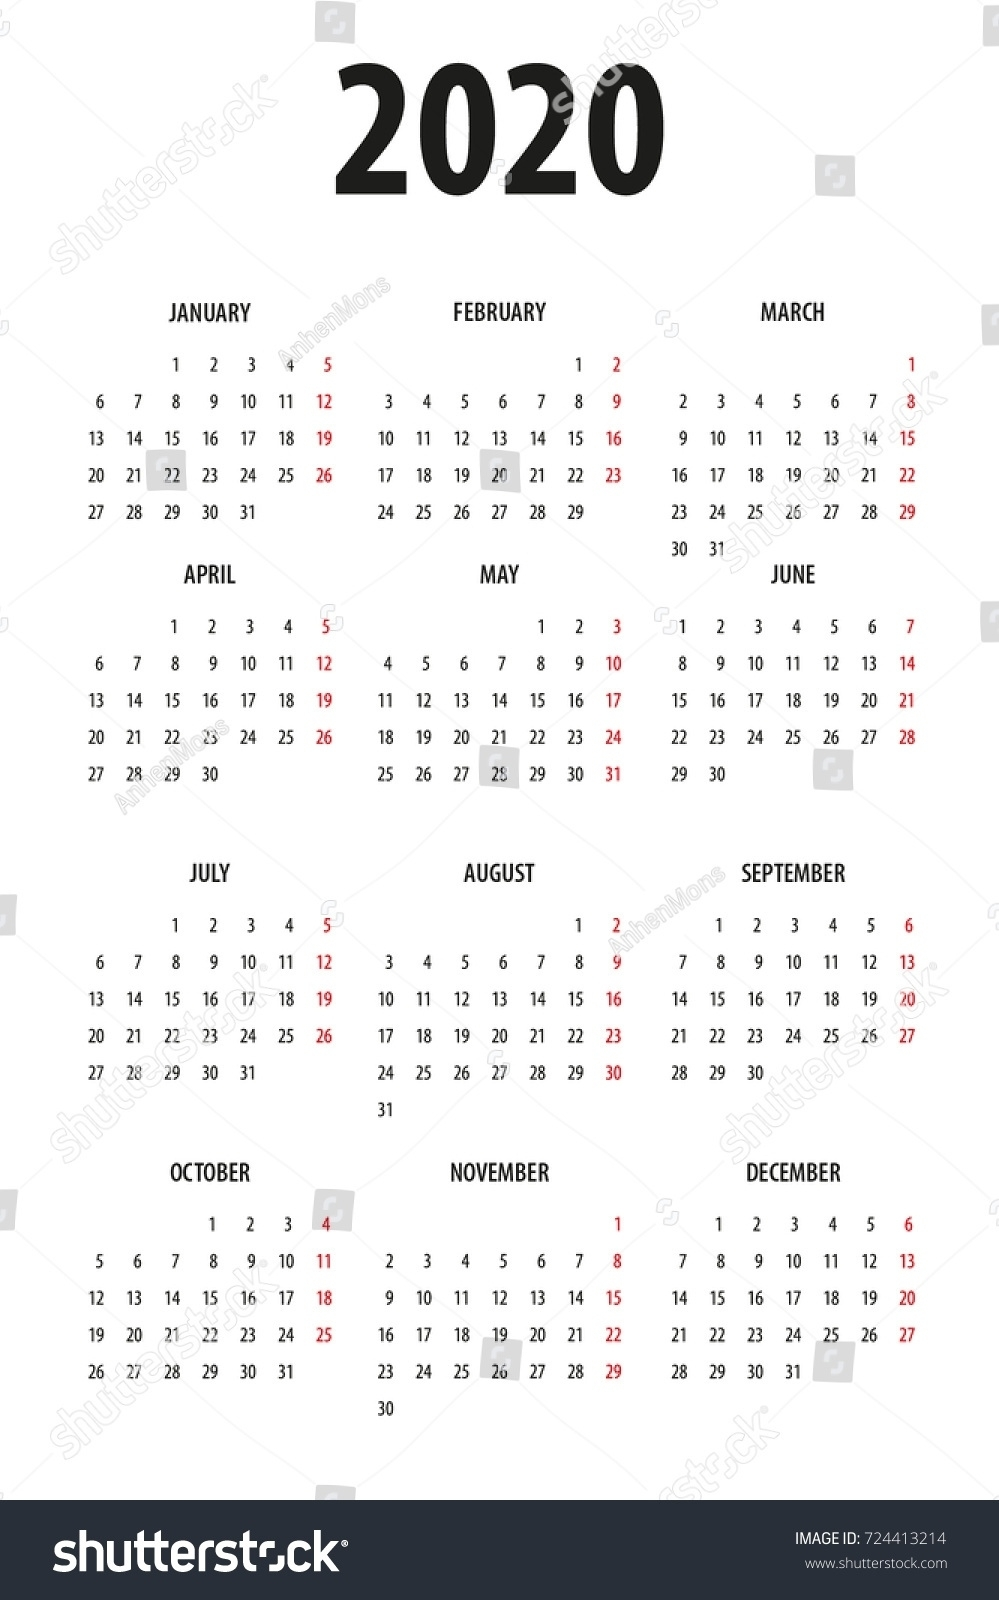 Exceptional 2020 Calendar Monday To Sunday • Printable Blank with 2020 Calendar Monday To Sunday